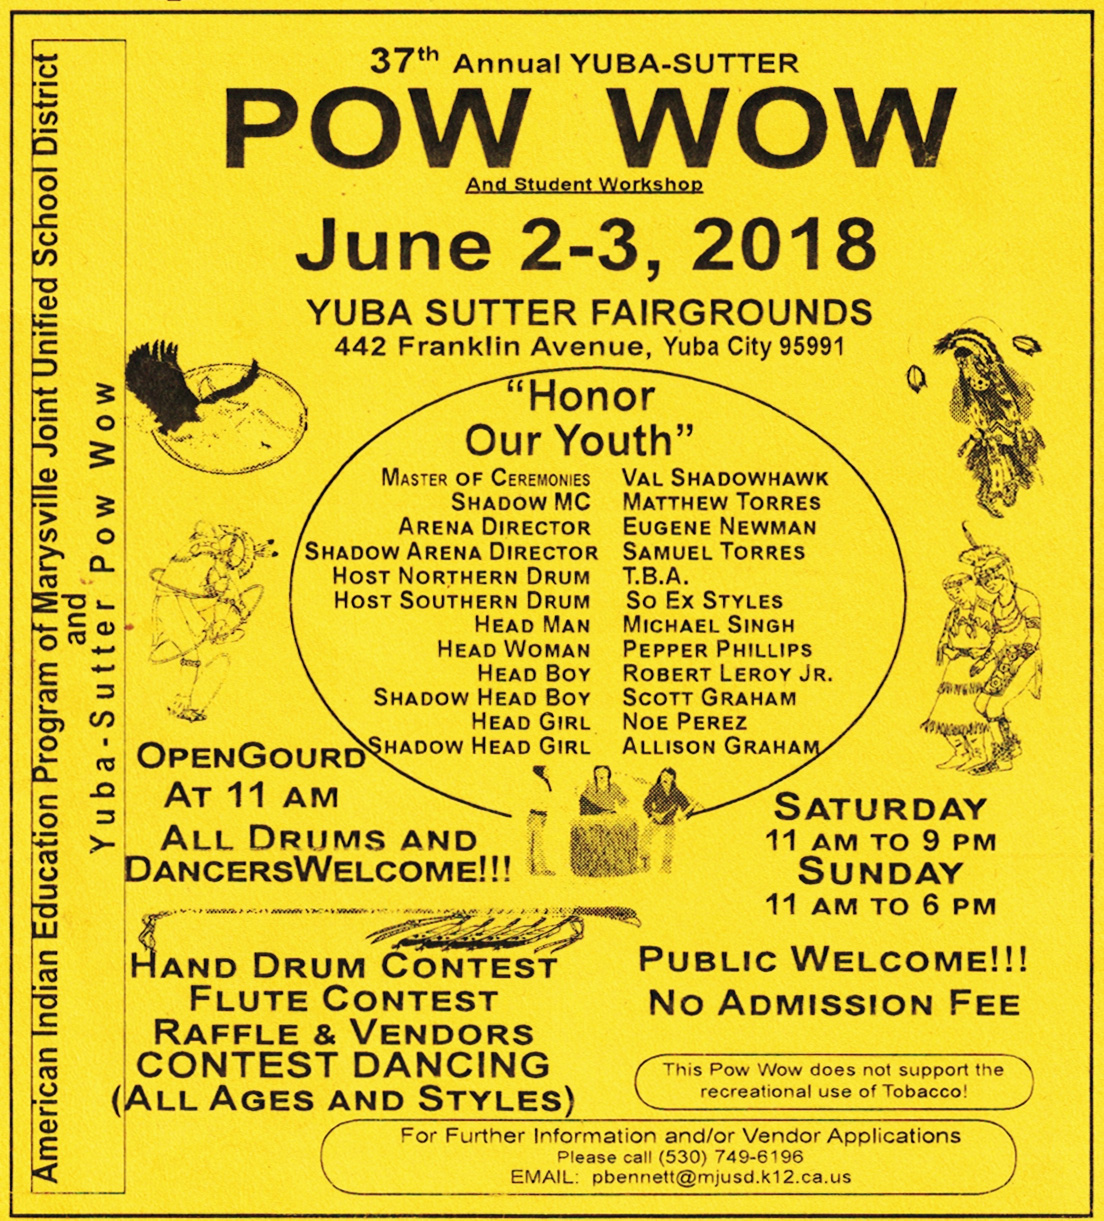 37th Annual Yuba Honor our Youth Sutter Powwow